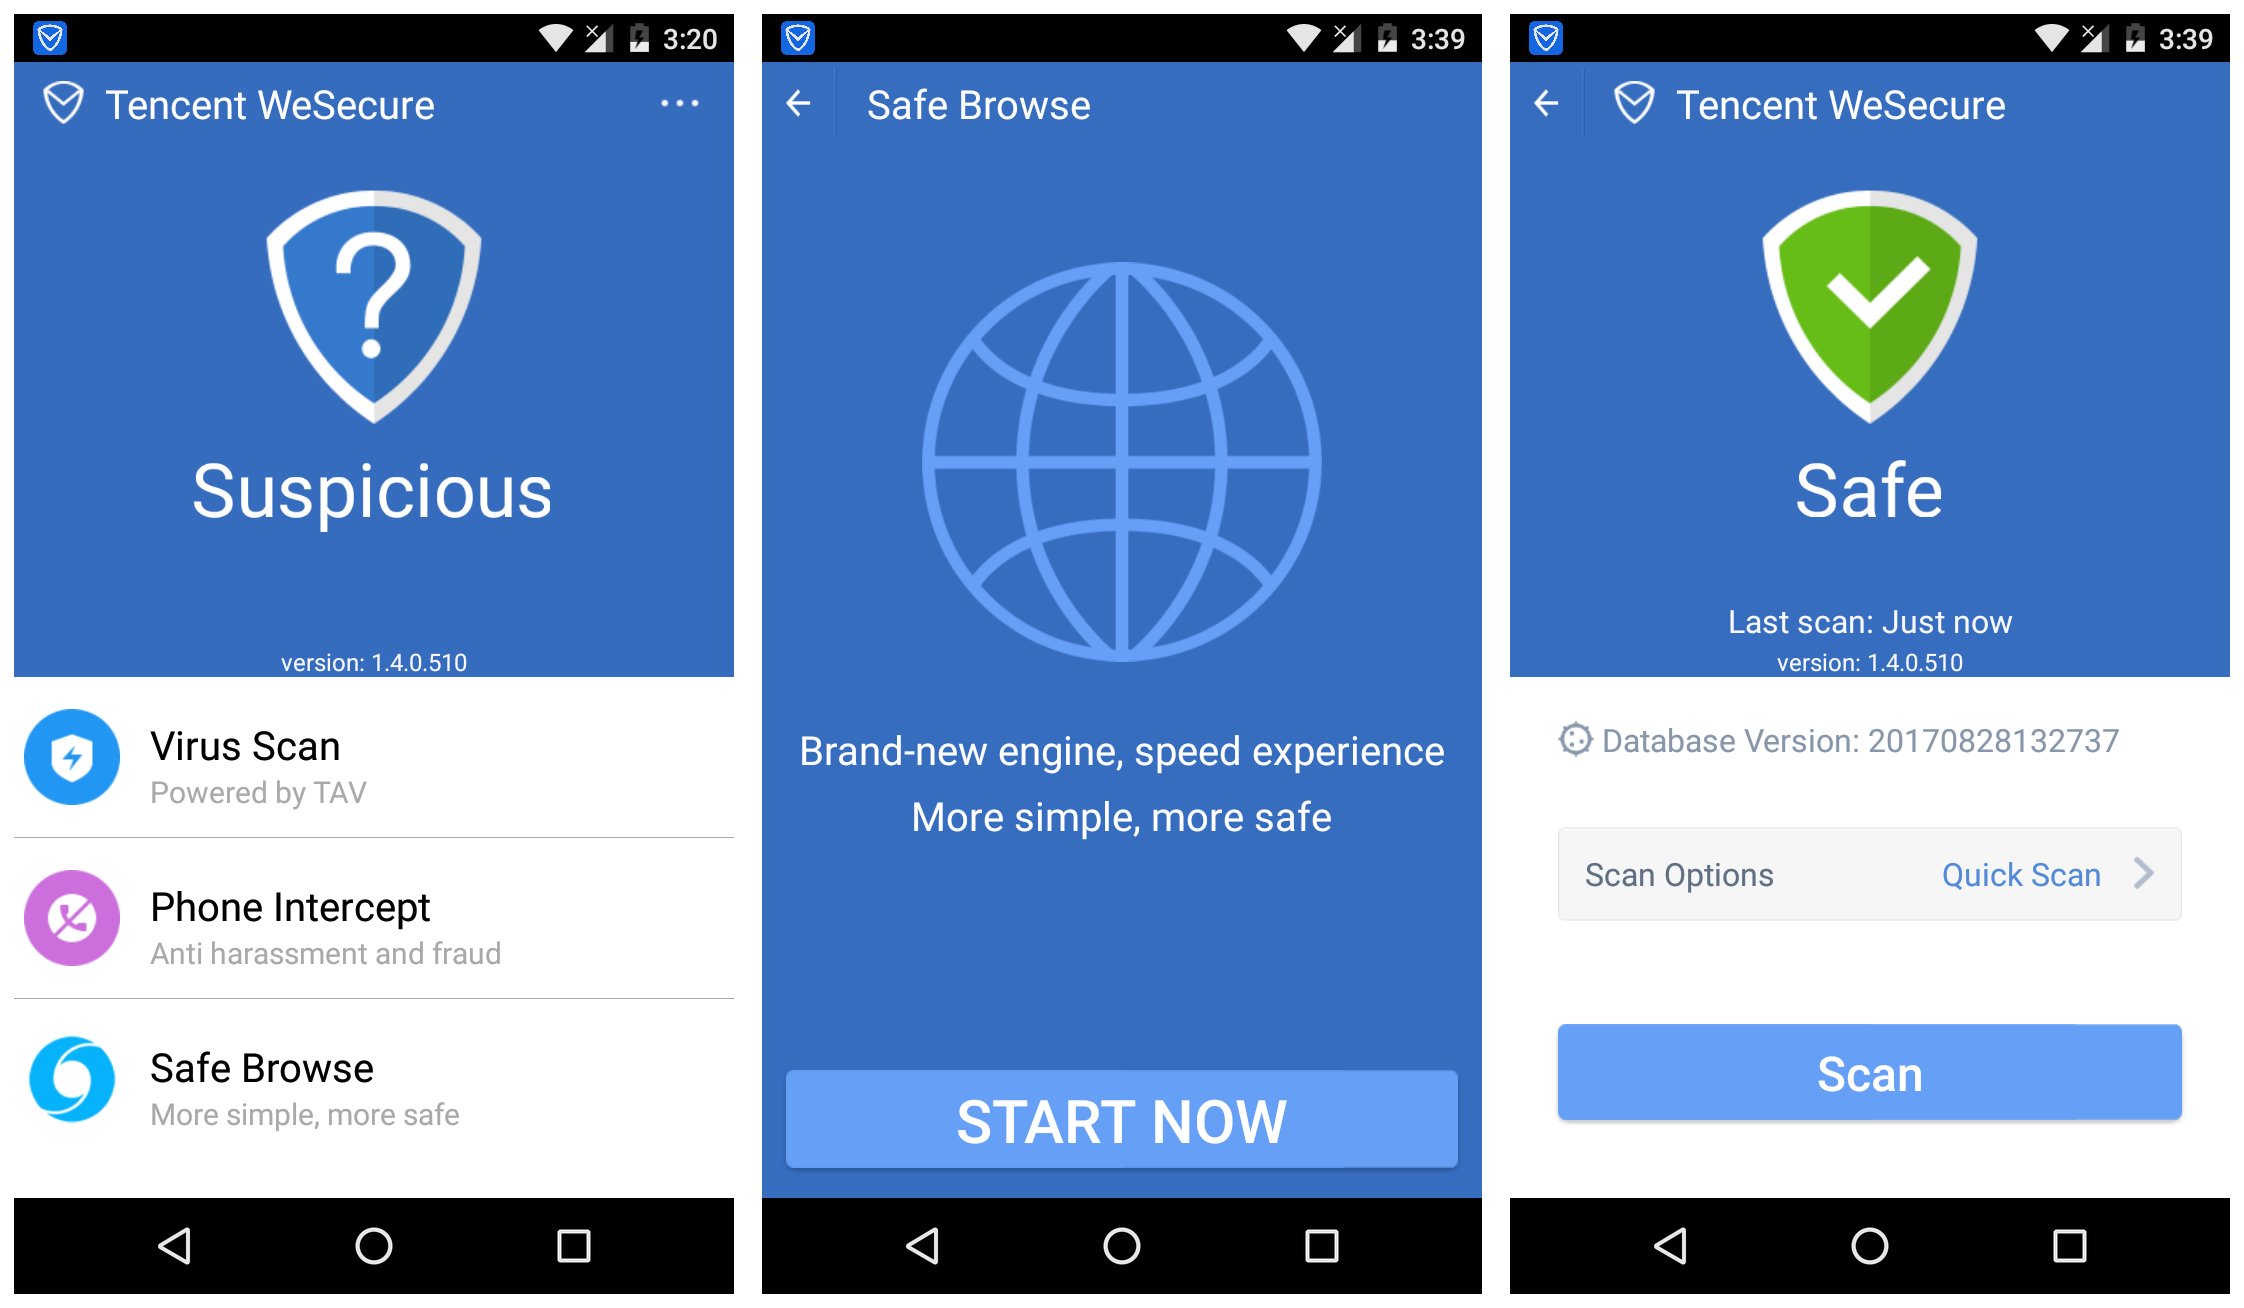 Tencent WeSecure Smartphone protection tool and Antivirus for Android devices